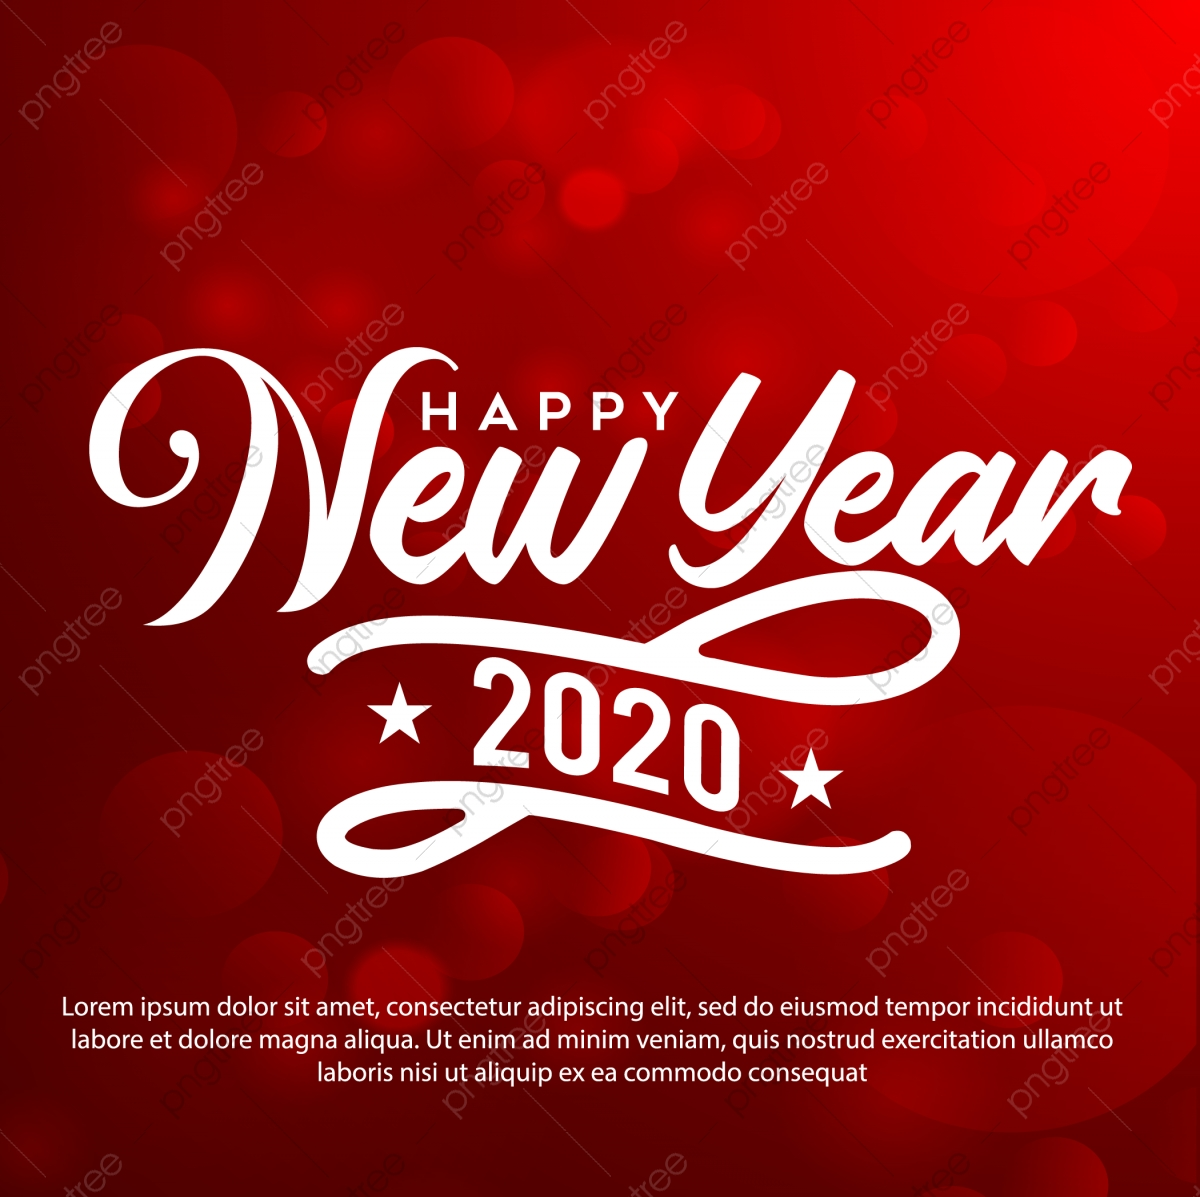 Happy New Year Greeting Card Wirh Red Background Template for Free Download  on Pngtree